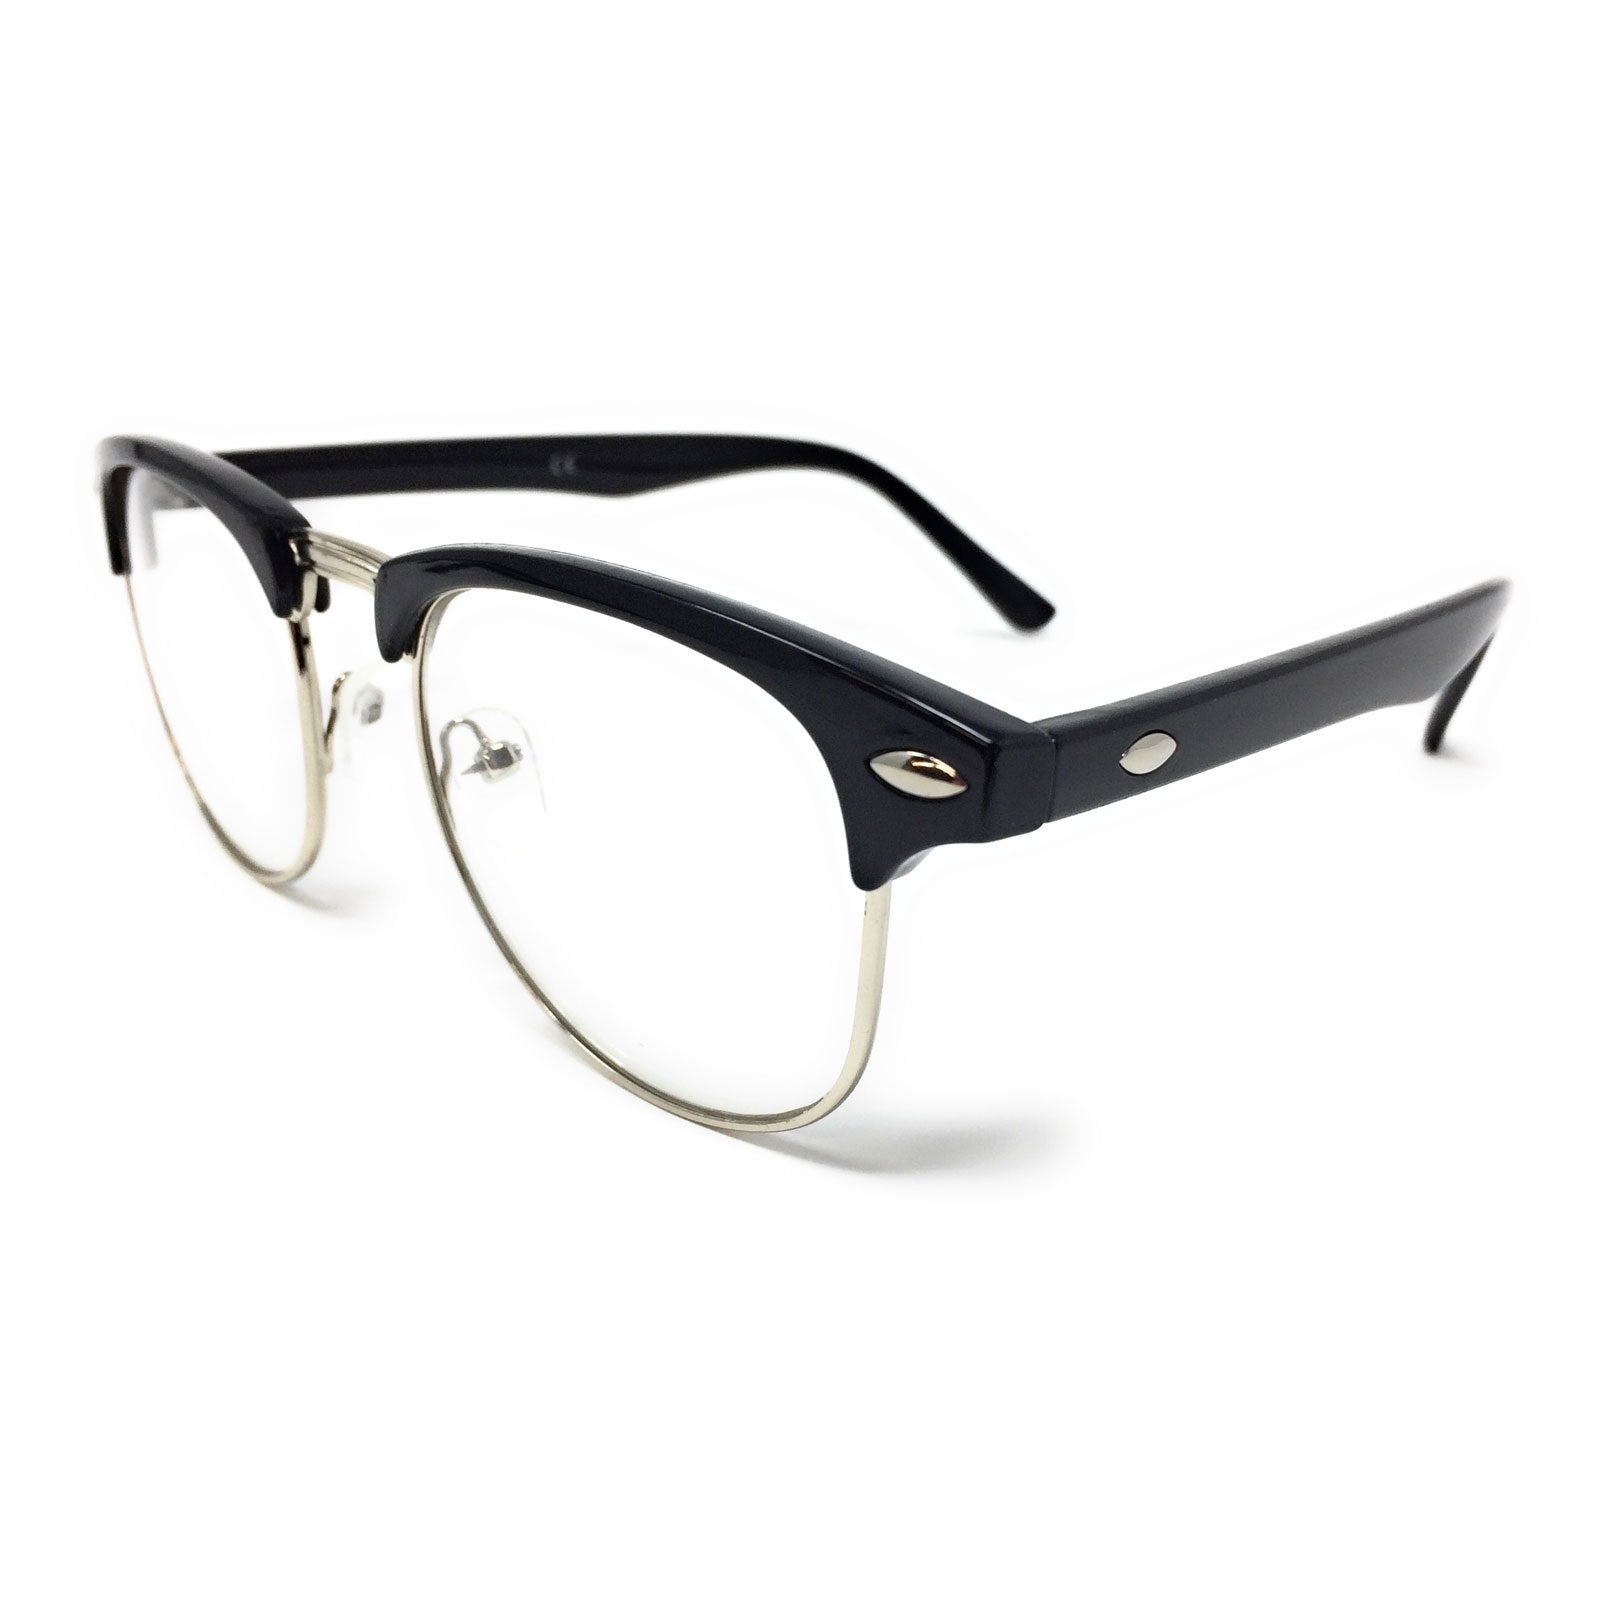 Wholesale 1950s Half Rim Clear Lens Glasses - Black Frame